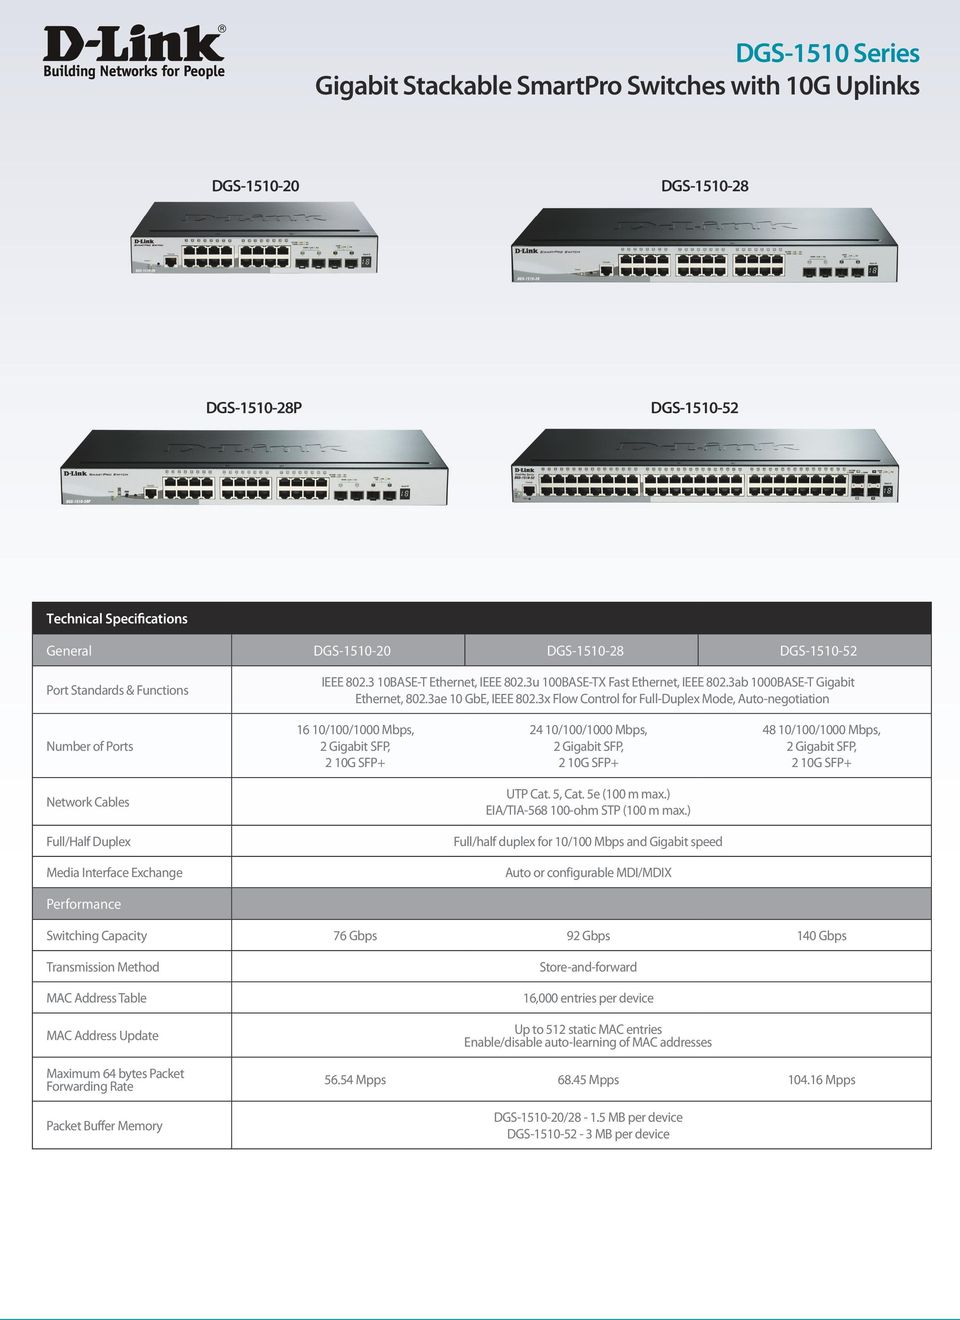 3x Flow Control for Full-Duplex Mode, Auto-negotiation Number of Ports 16 10/100/1000 Mbps, 2 Gigabit SFP, 2 10G SFP+ 24 10/100/1000 Mbps, 2 Gigabit SFP, 2 10G SFP+ 48 10/100/1000 Mbps, 2 Gigabit